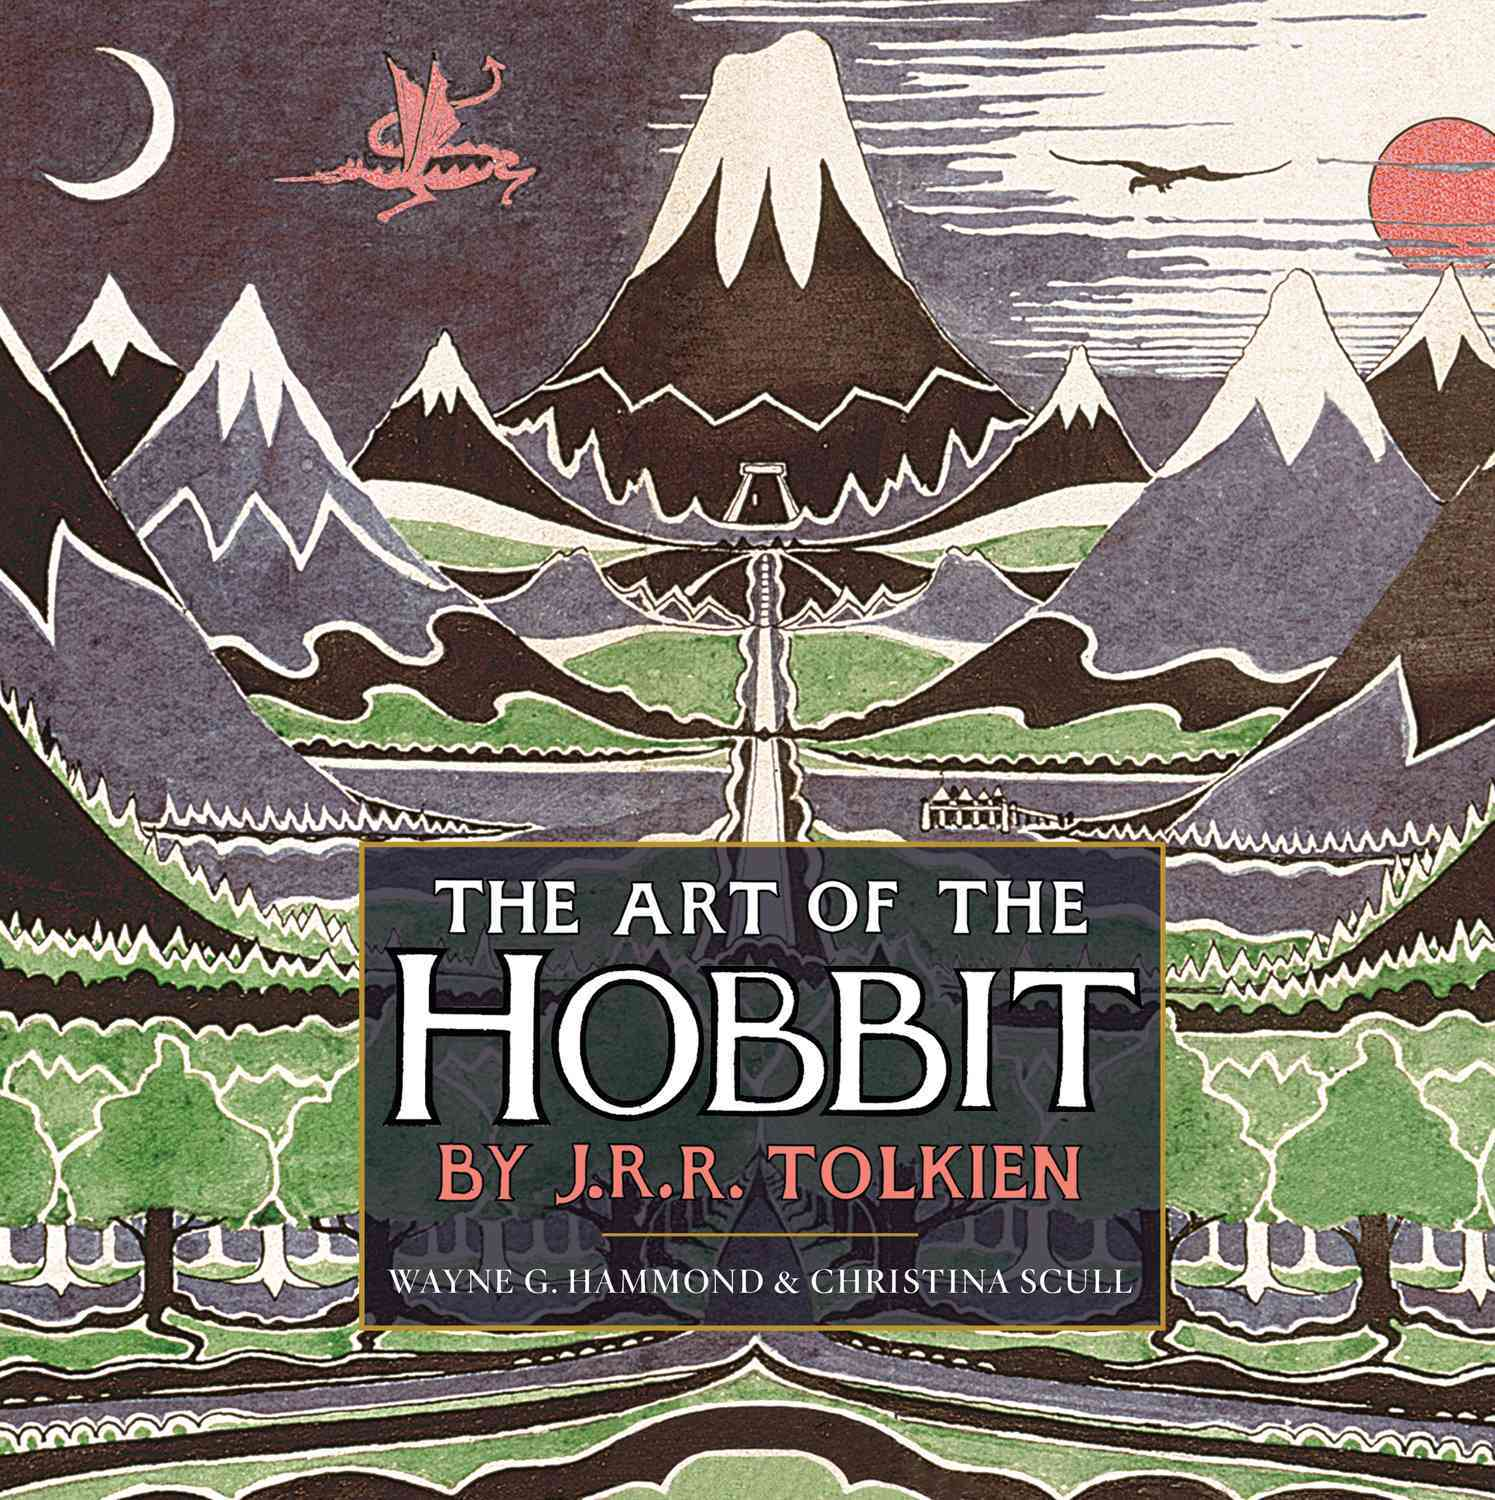 The Art of the Hobbit (Hardcover)